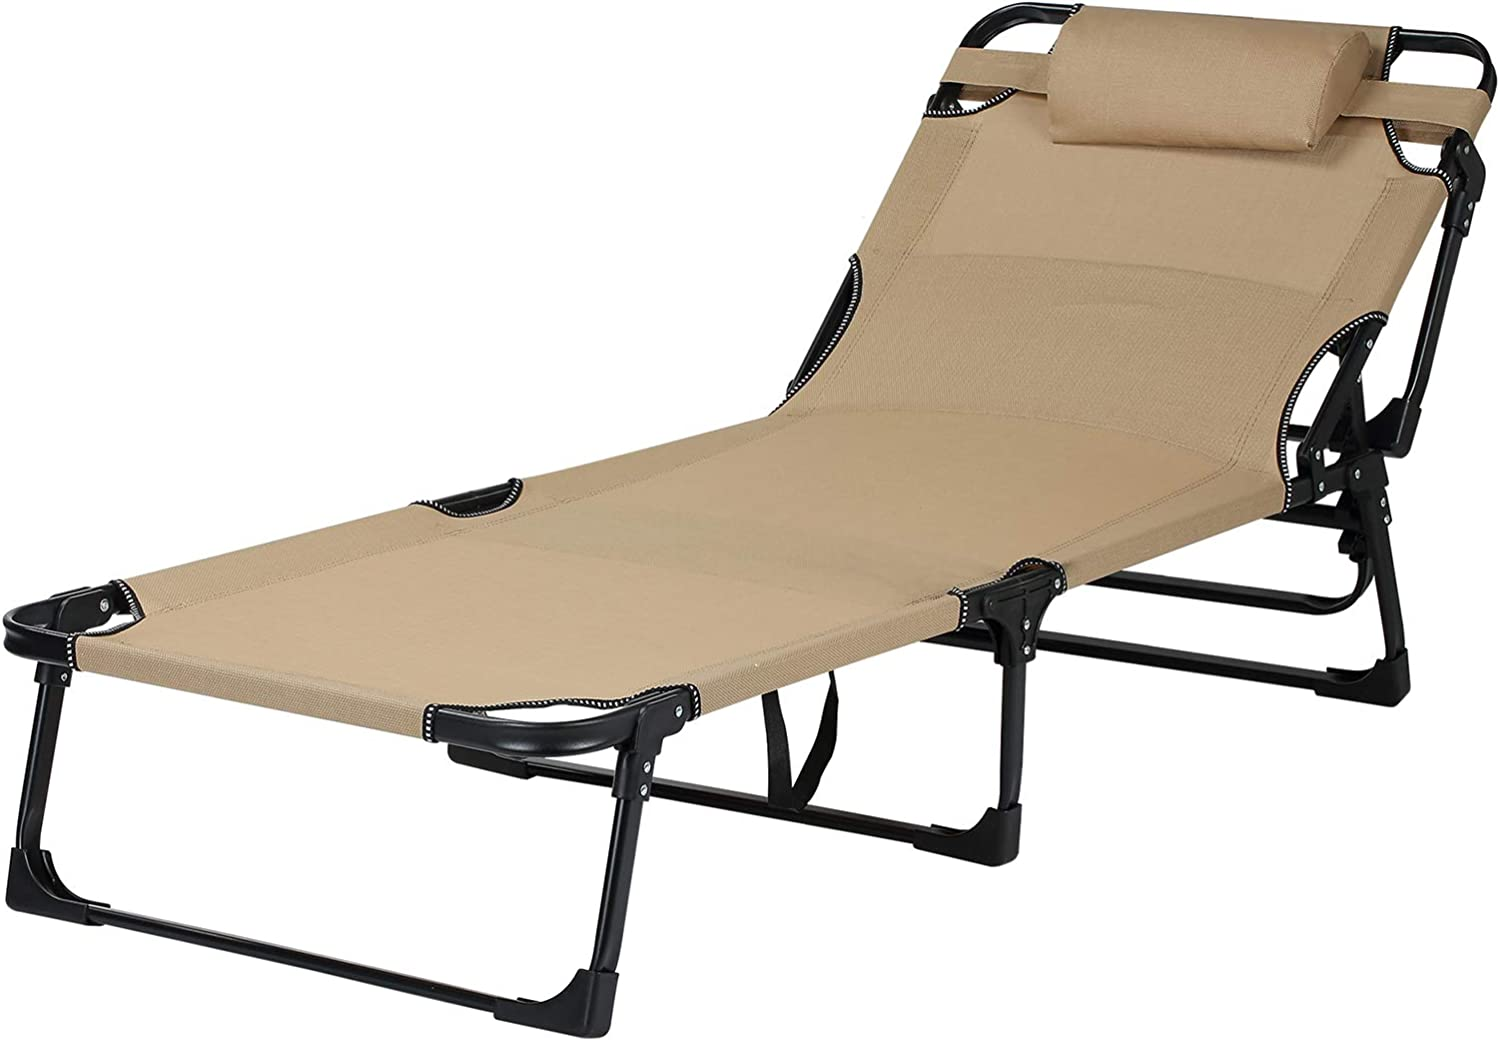 Lawn Sunbathing Deck with Pillow Pool Outdoor Portable Folding Chaise Lounge Chair for Beach Patio LAJOSON Camping Adjustable Folding Bed